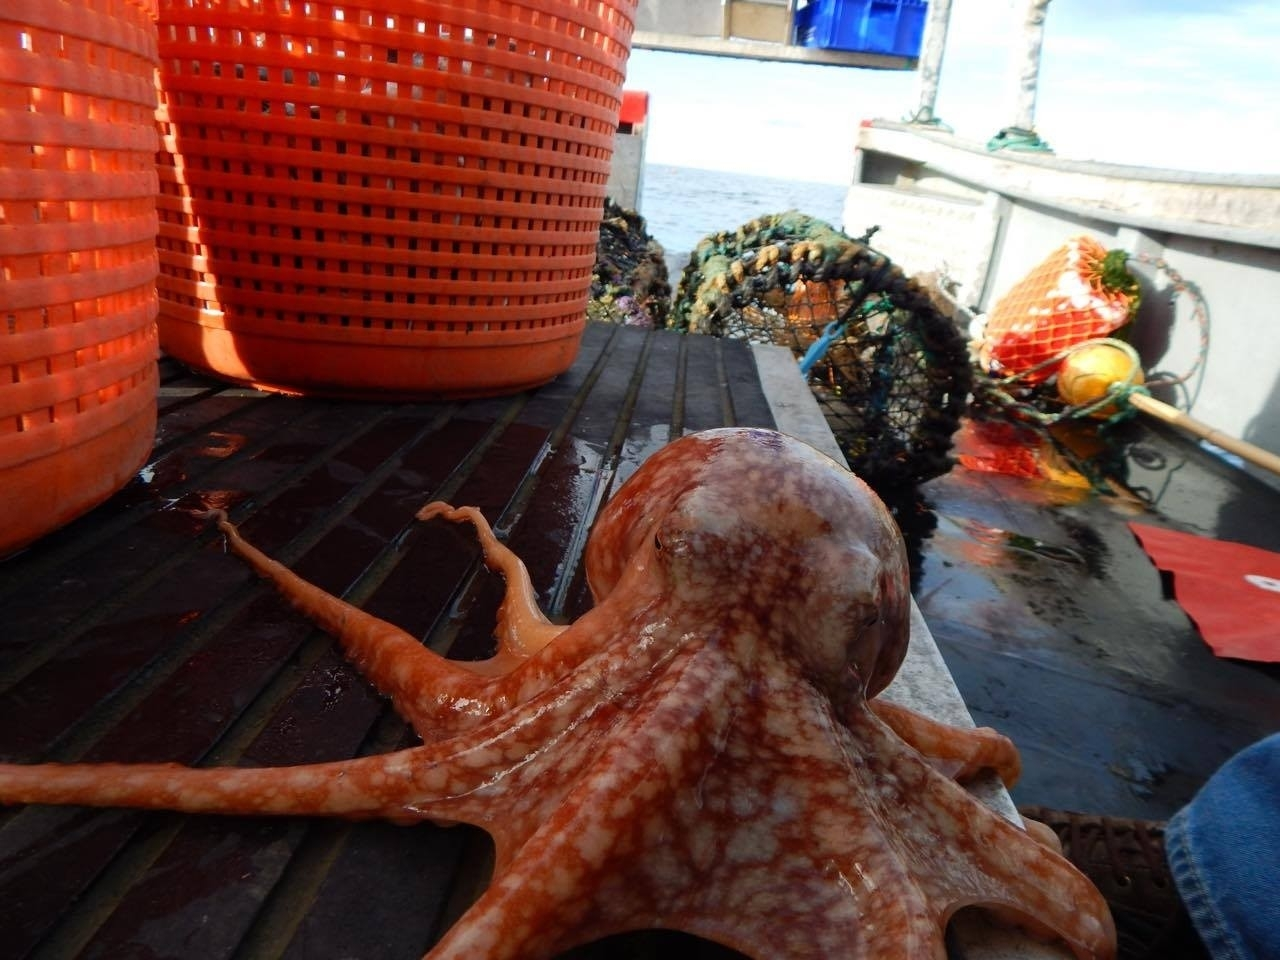 The octopus was found 500 yards off the Banffshire coast. Pictures by Reg Connon.